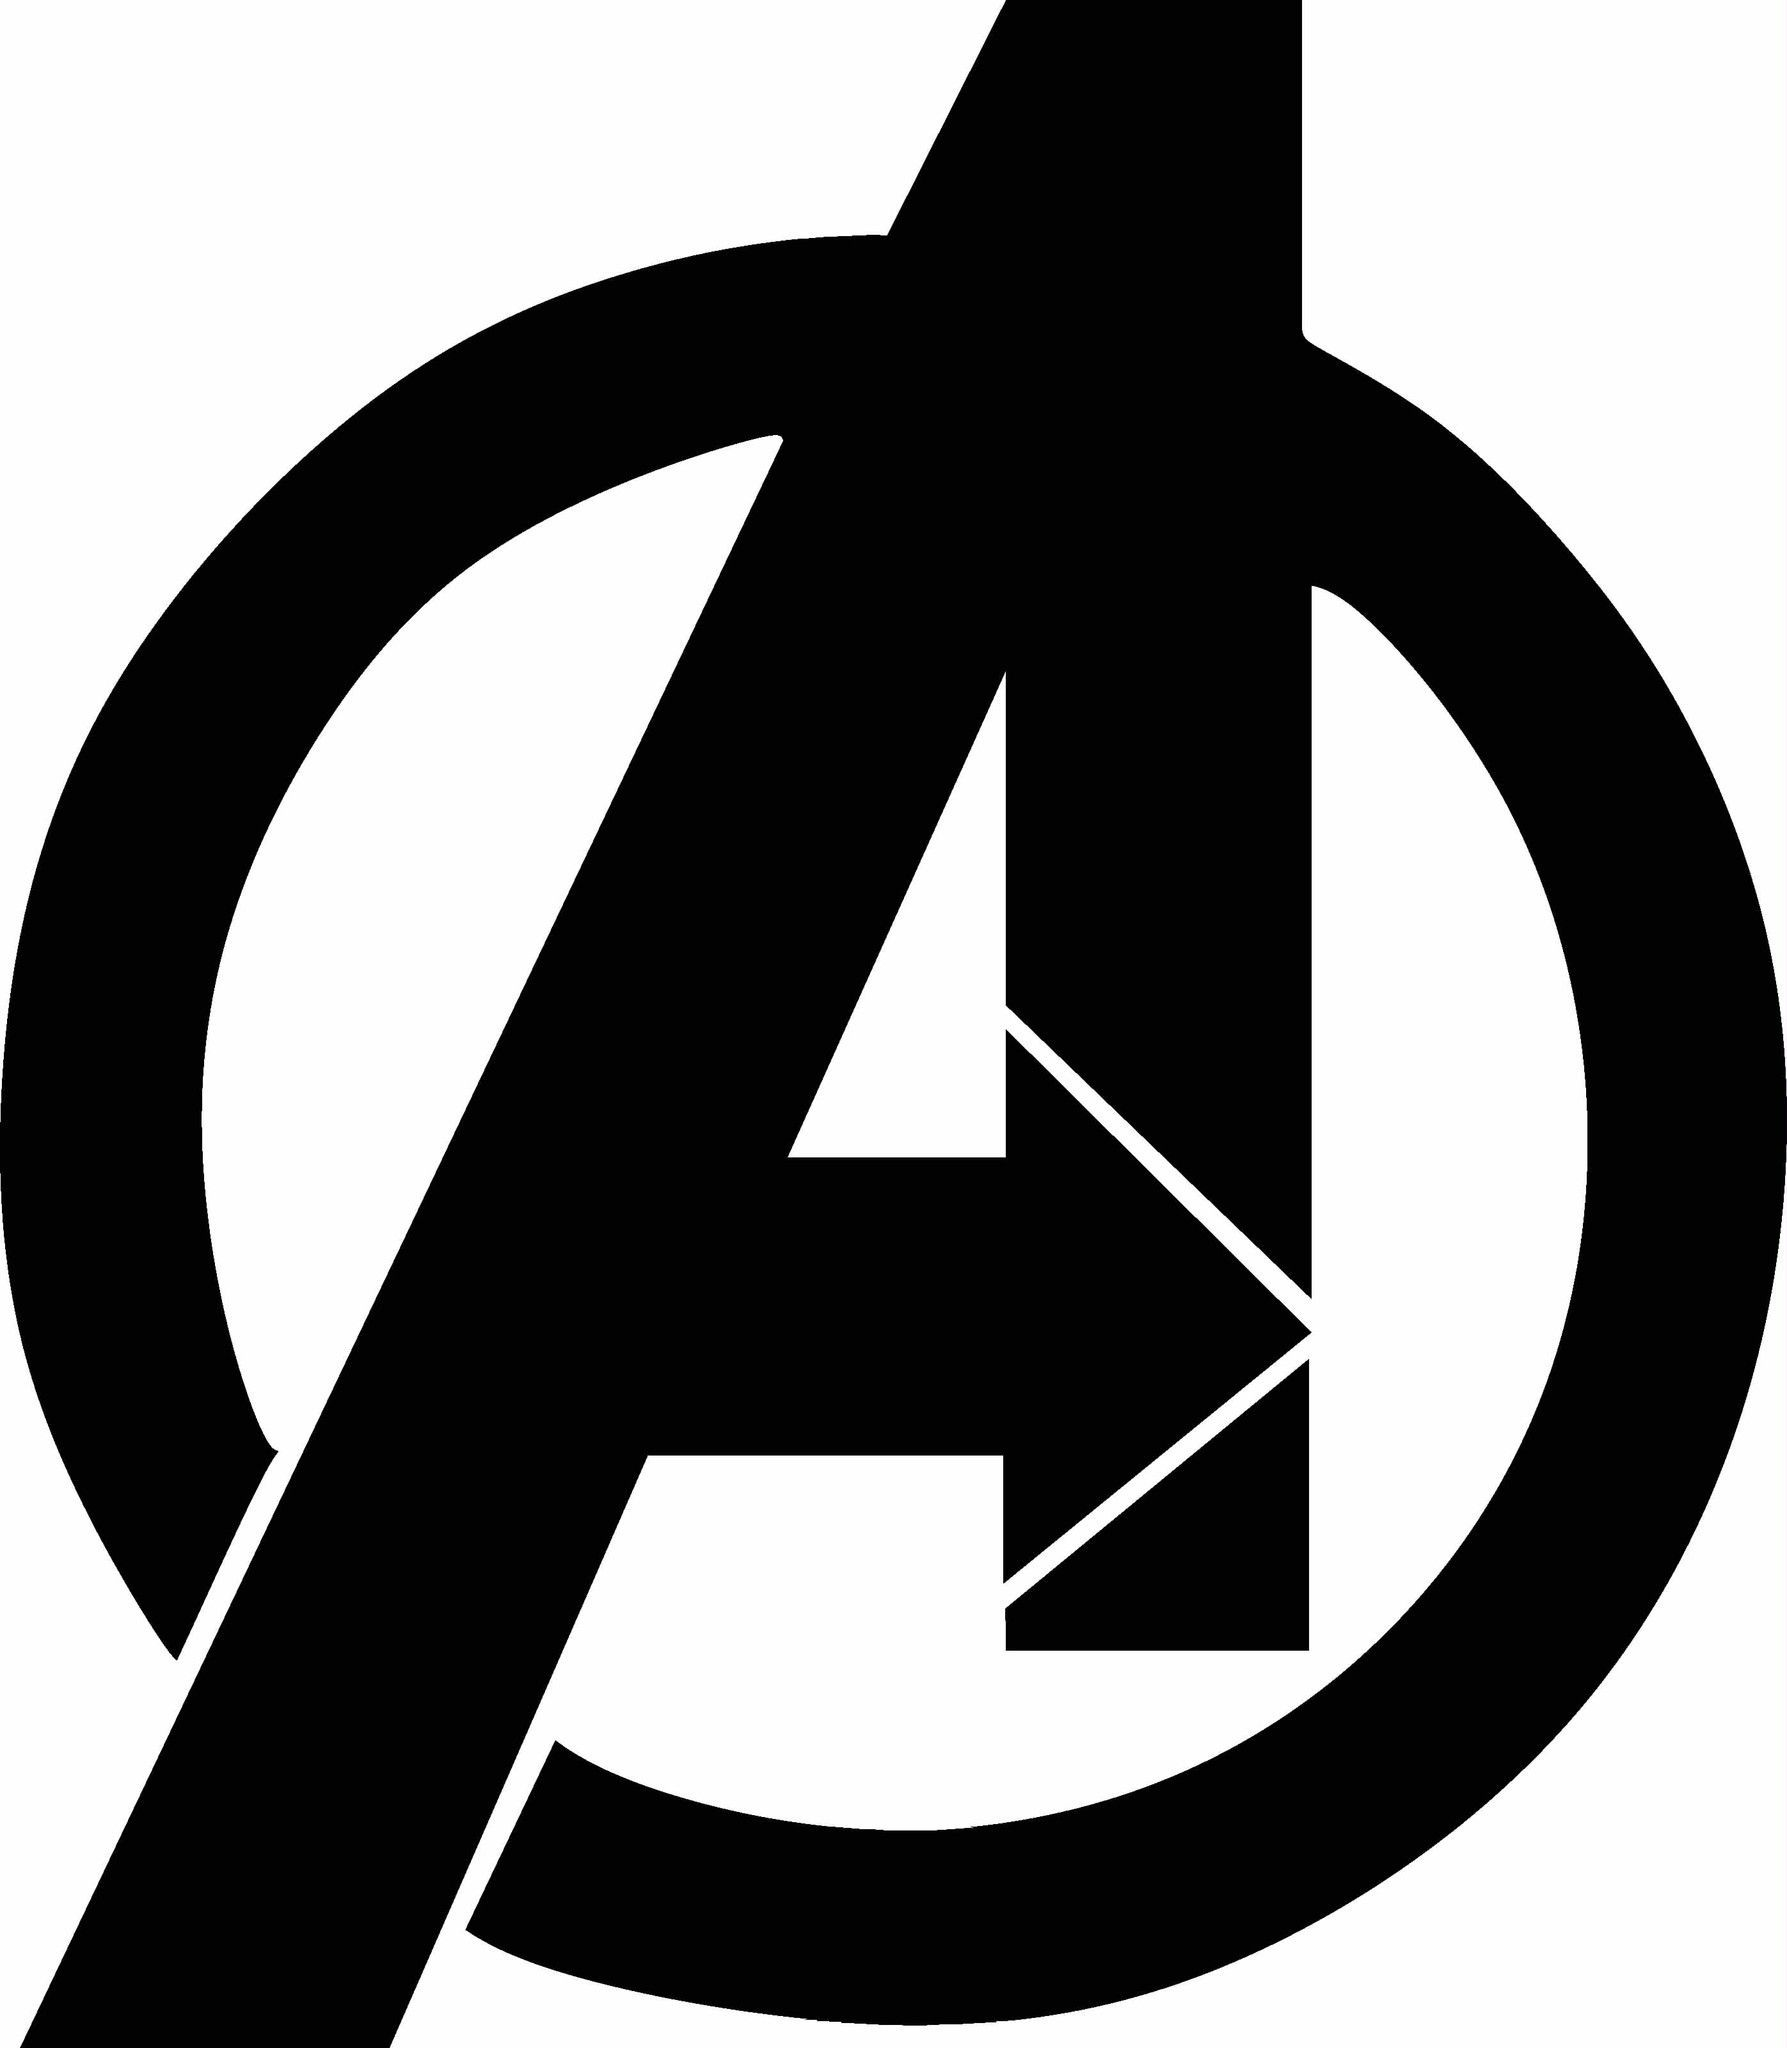 Avengers Logo Vinyl Decal Graphic.